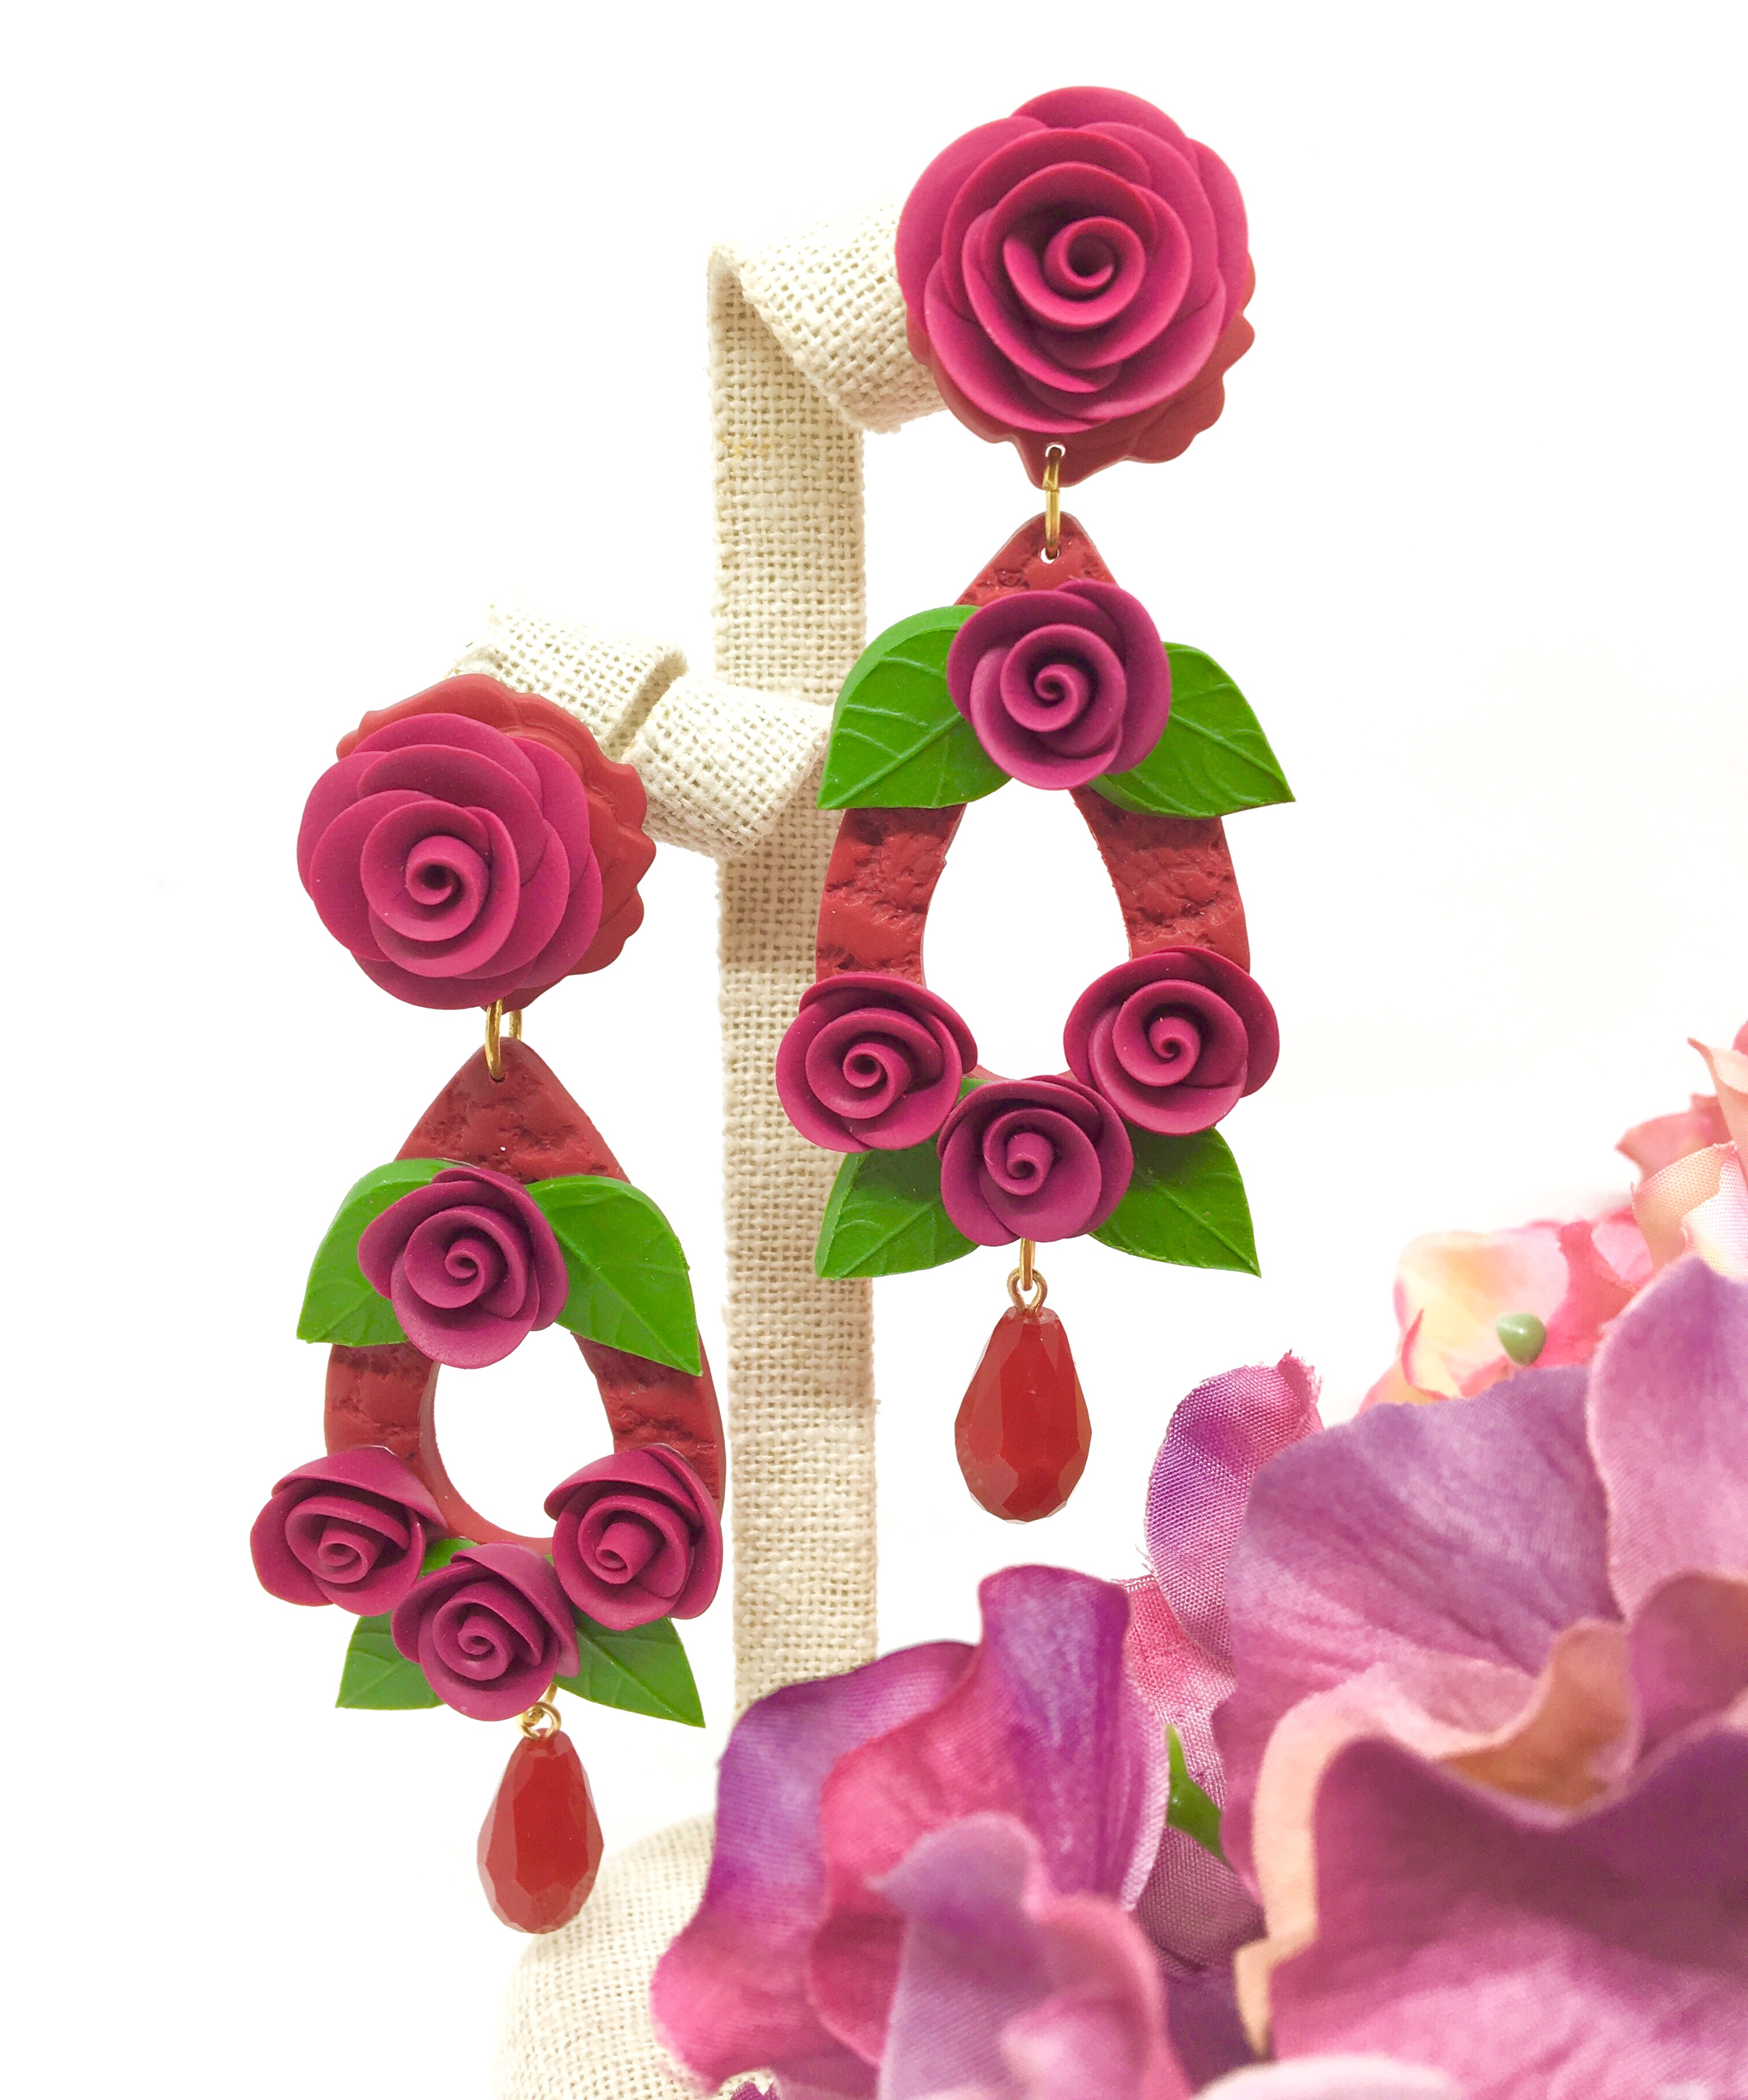 Roses on teardrop shape earrings